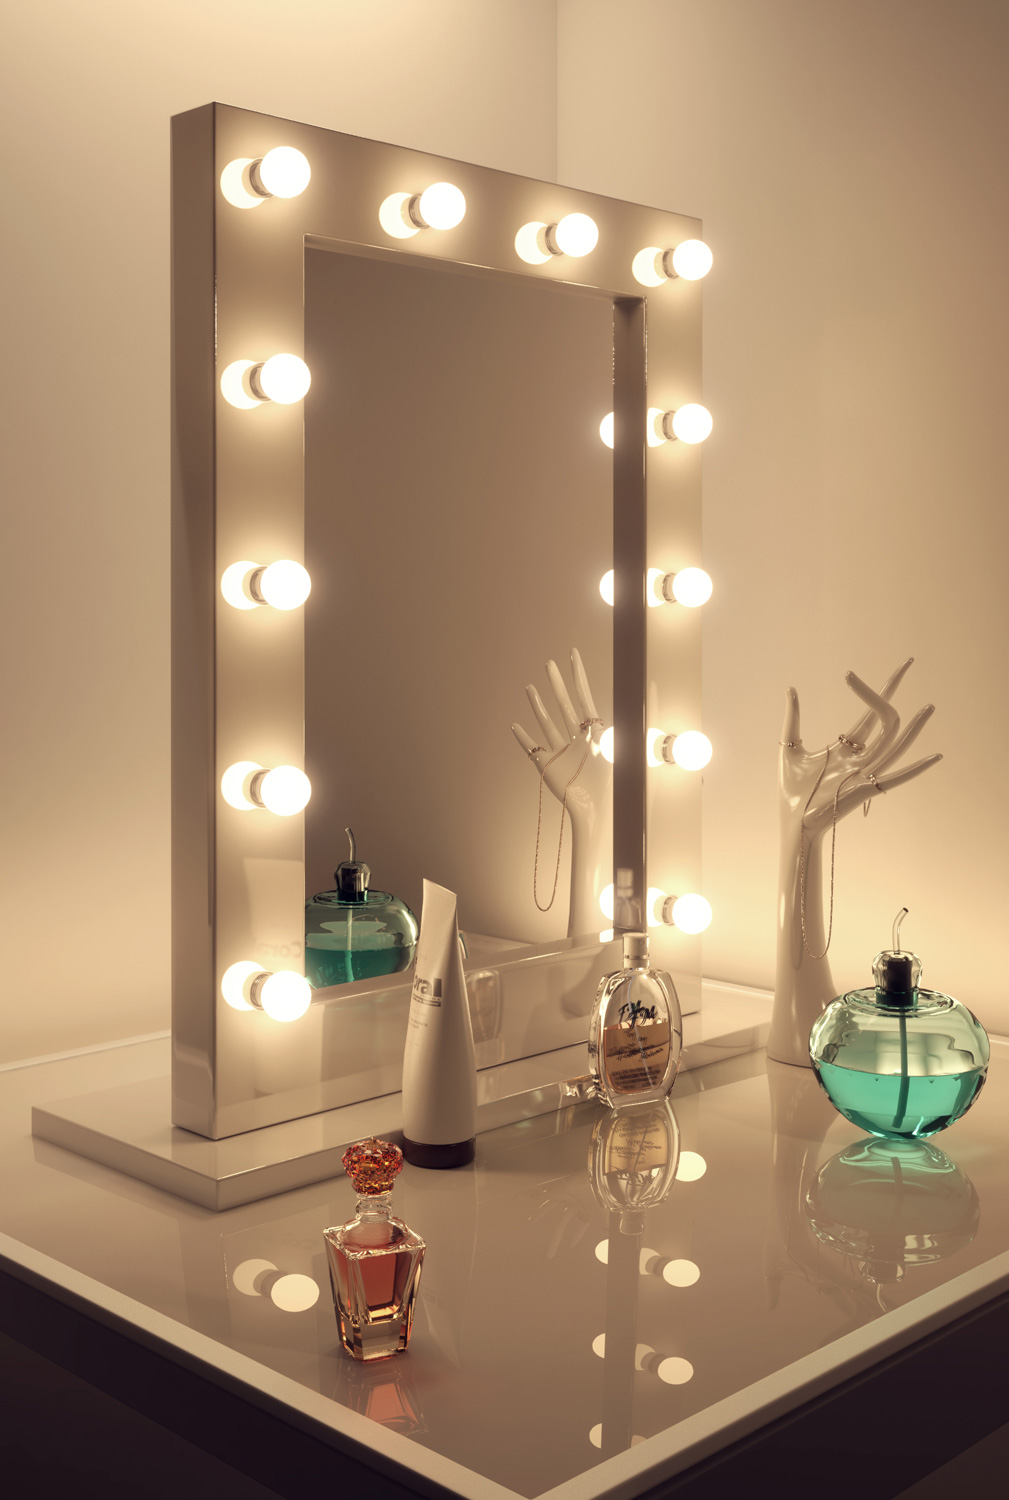 high gloss white hollywood makeup theatre dressing room mirror k113 ebay. Black Bedroom Furniture Sets. Home Design Ideas